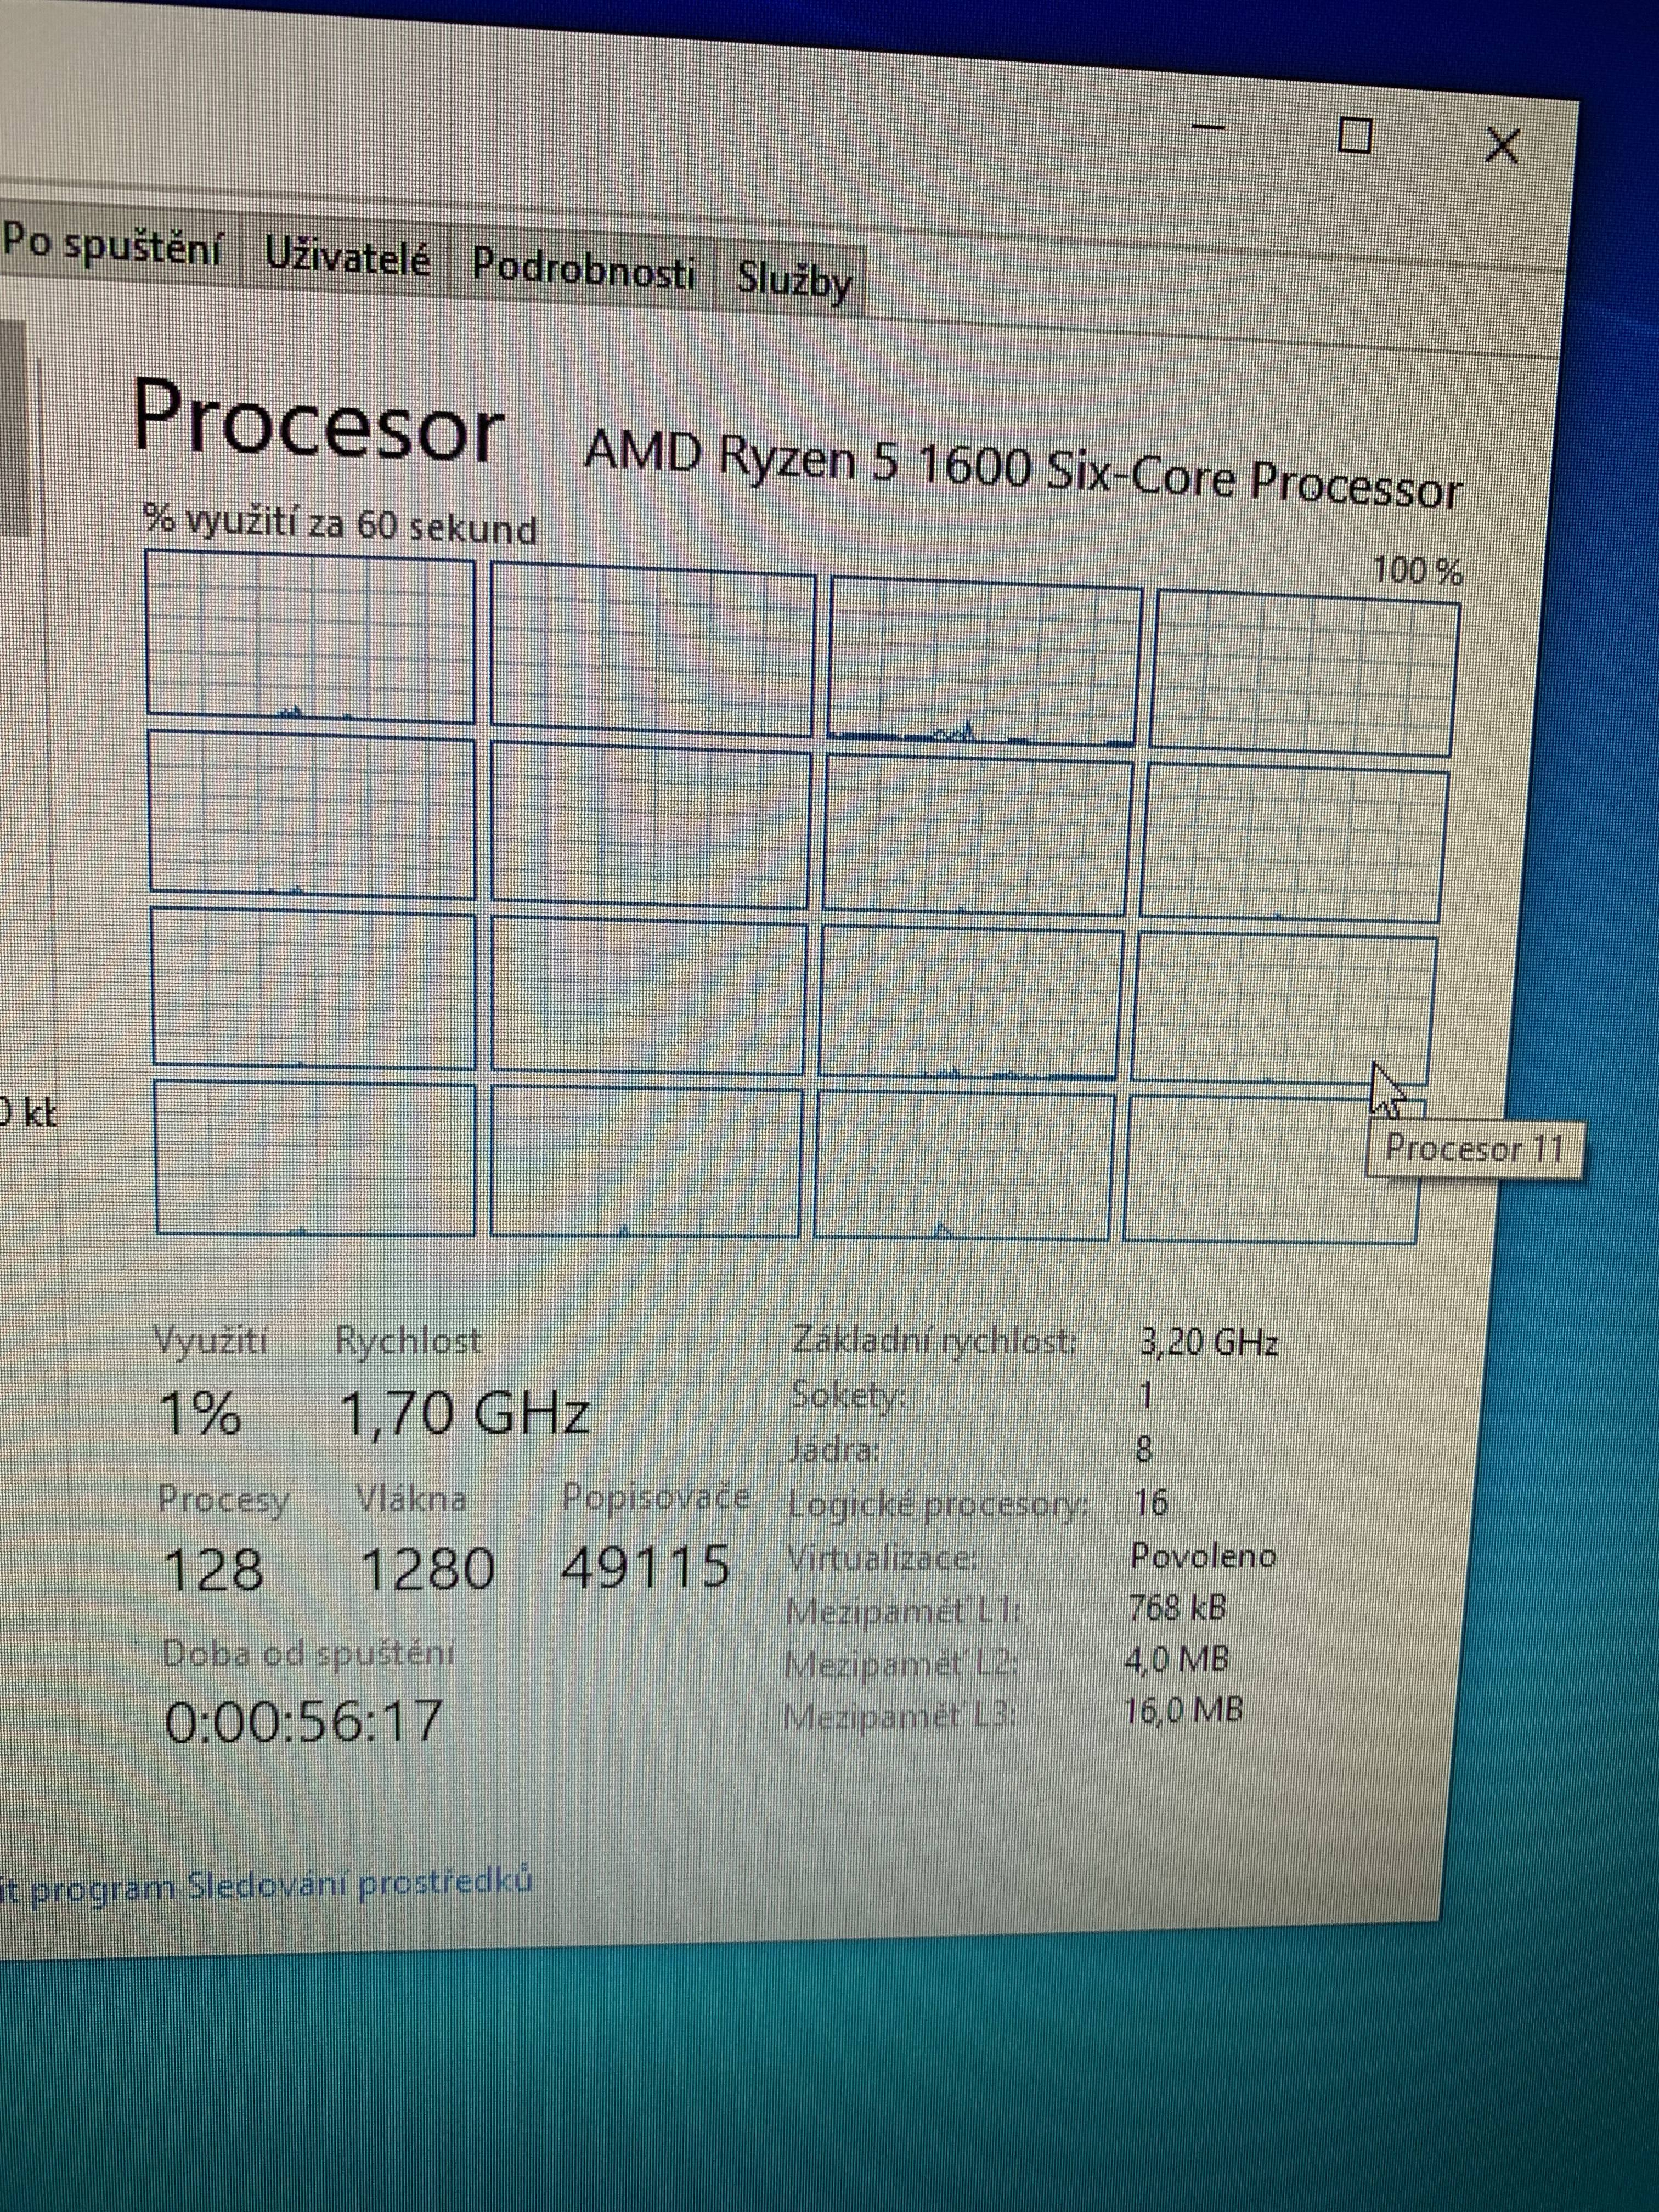 8 core Ryzen 5 1600? WTF? - CPUs, Motherboards, and Memory